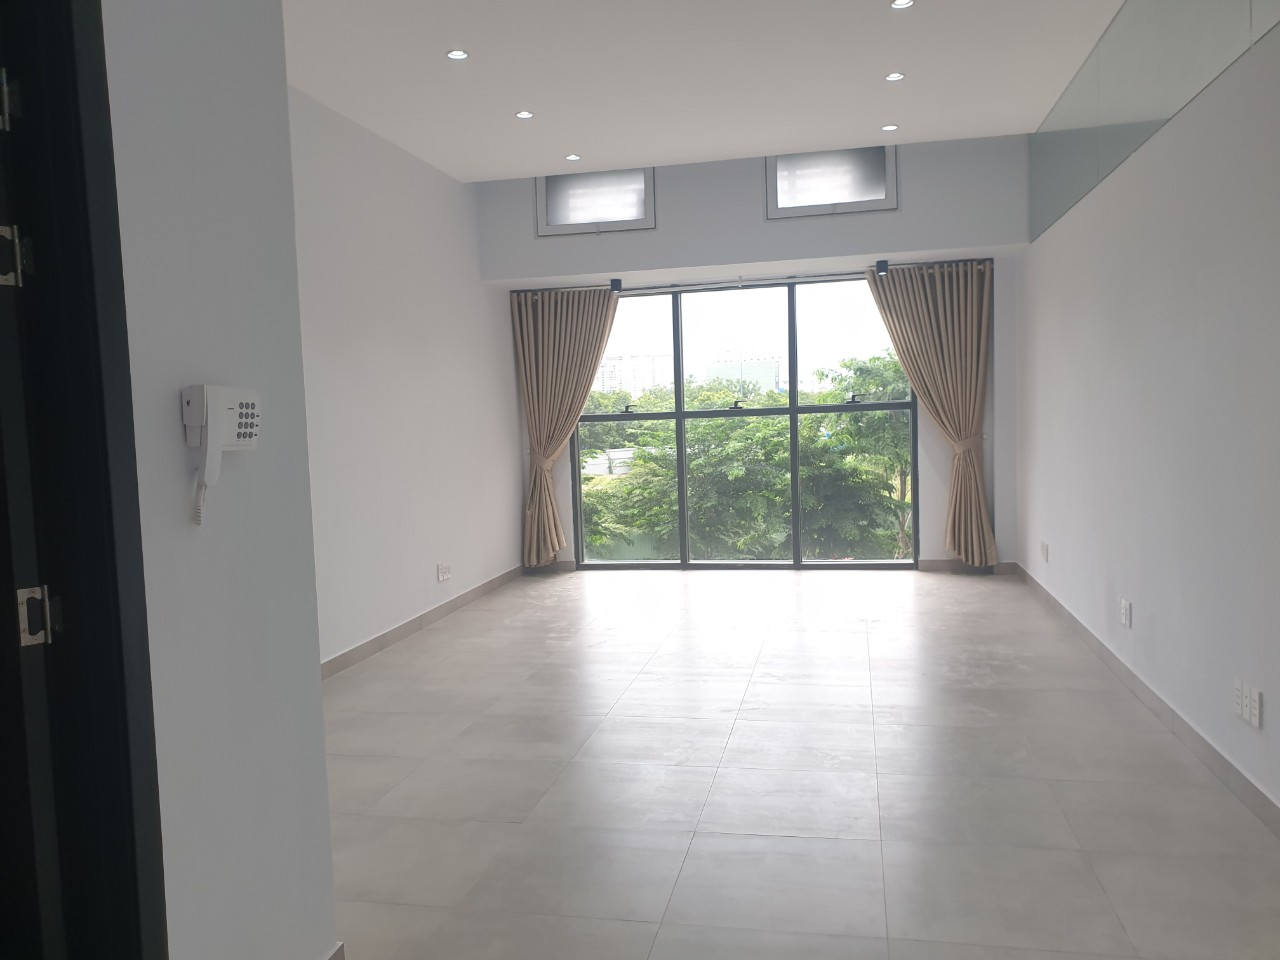 Apartment for rent D2272100 (3)